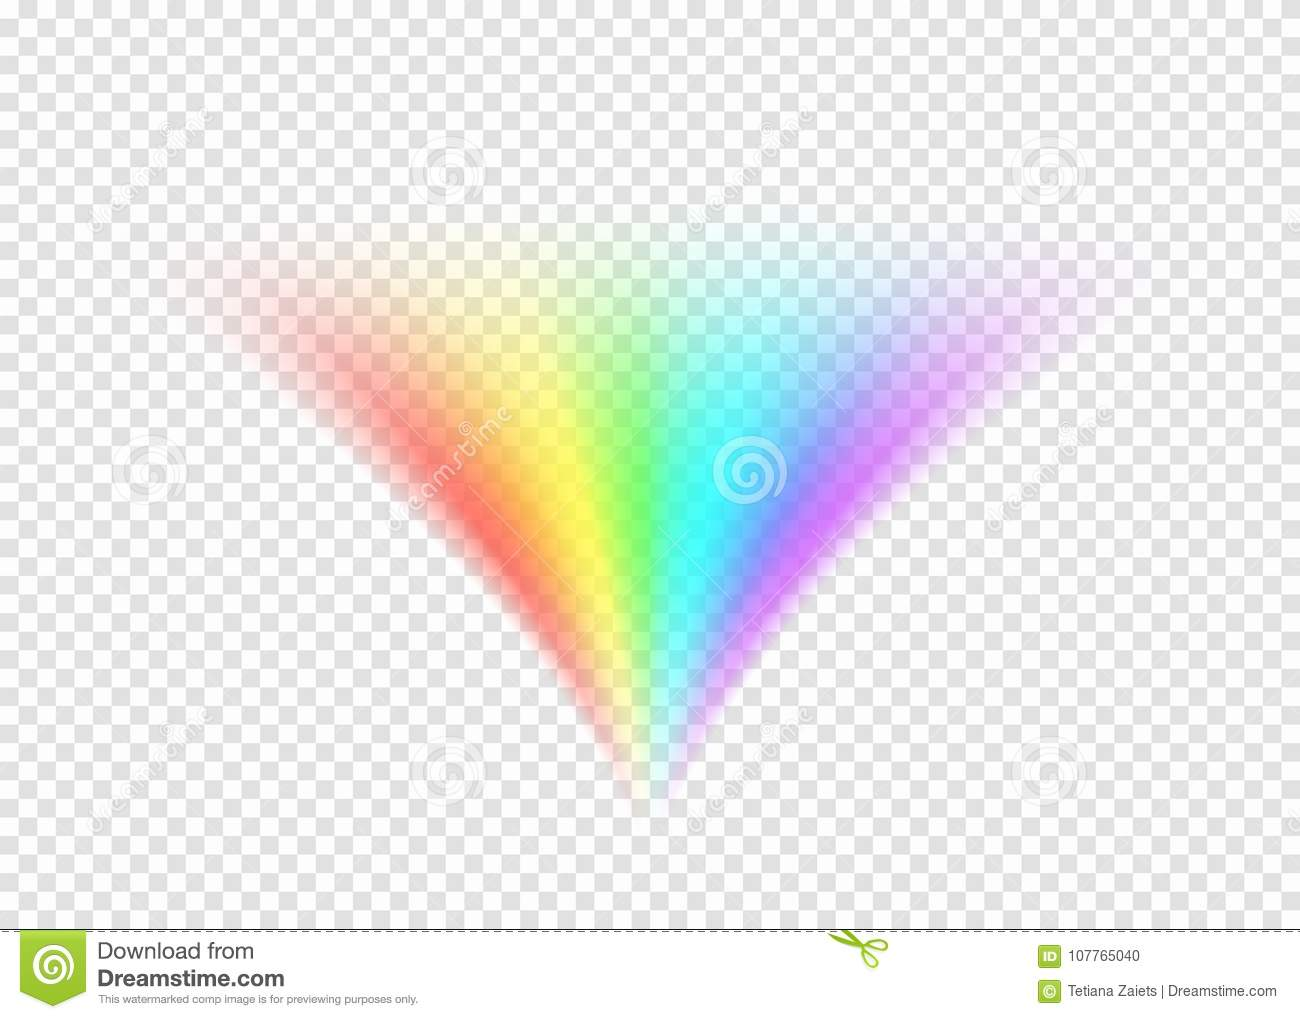 Rainbow Notes On Light Background Stock: Rainbow Road On Light Transparent Background Stock Vector